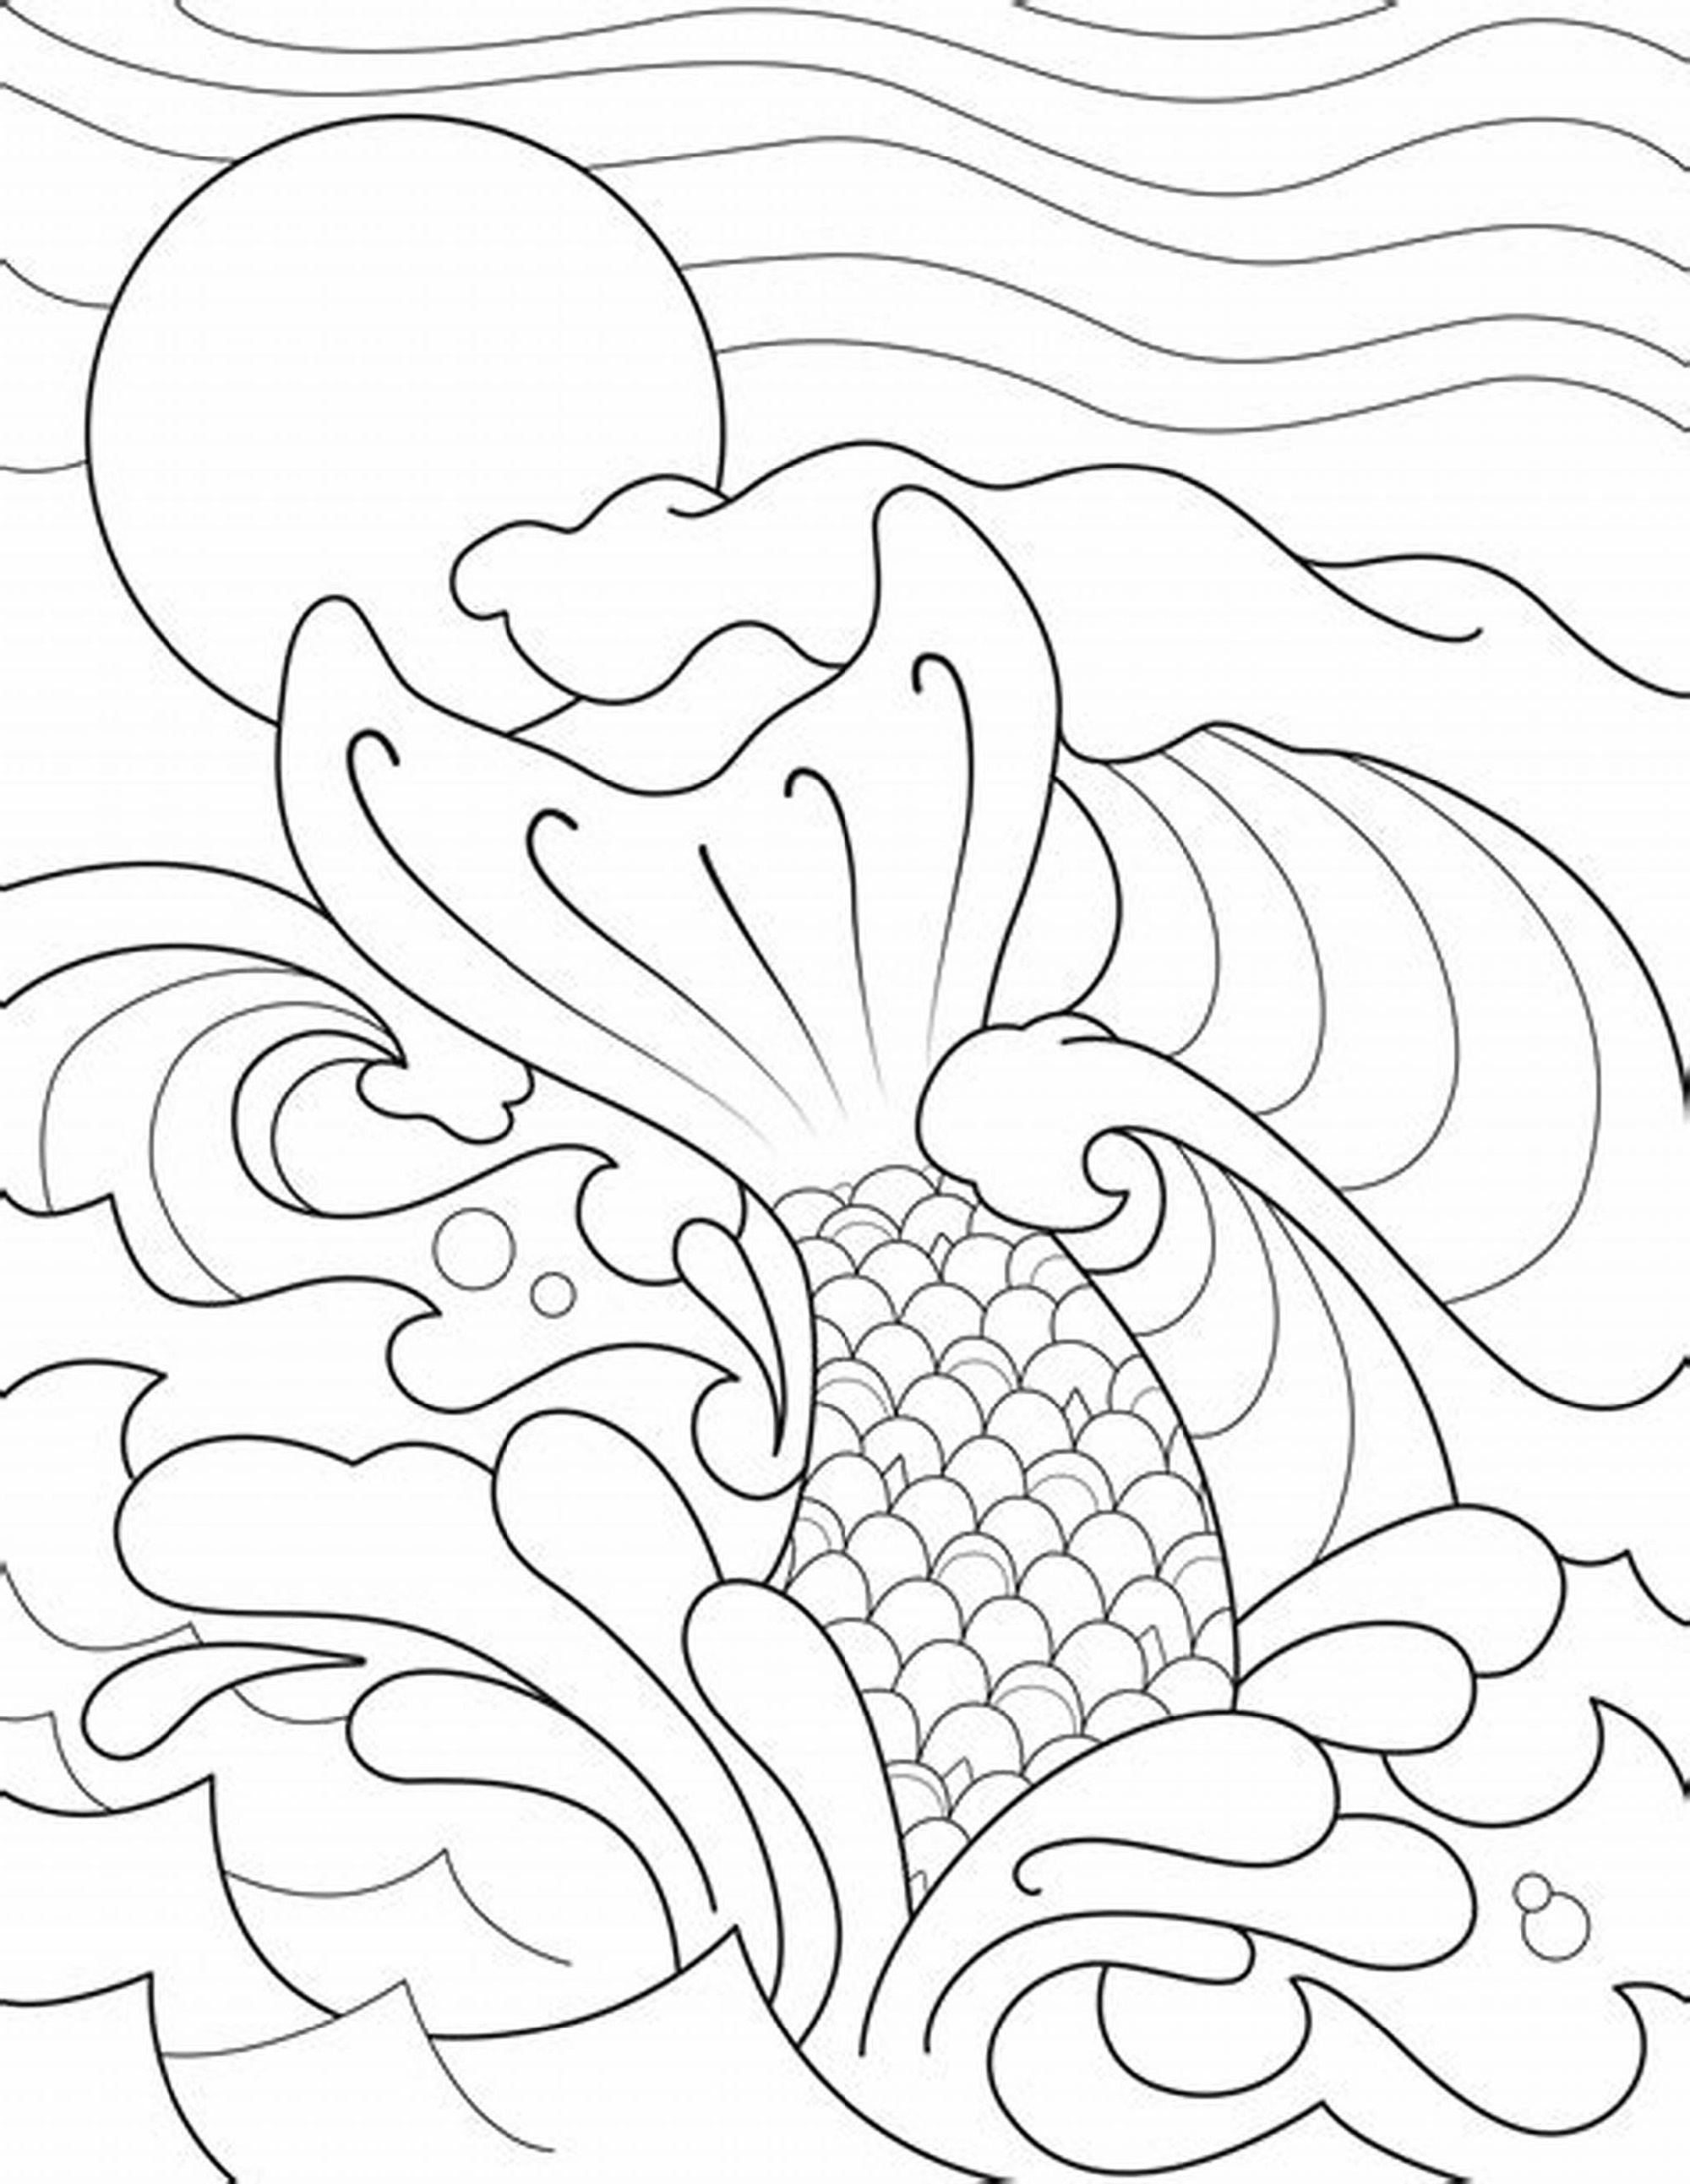 coloring pages of mermaid tails image result for mermaid tail template cumpleaños de coloring of pages tails mermaid